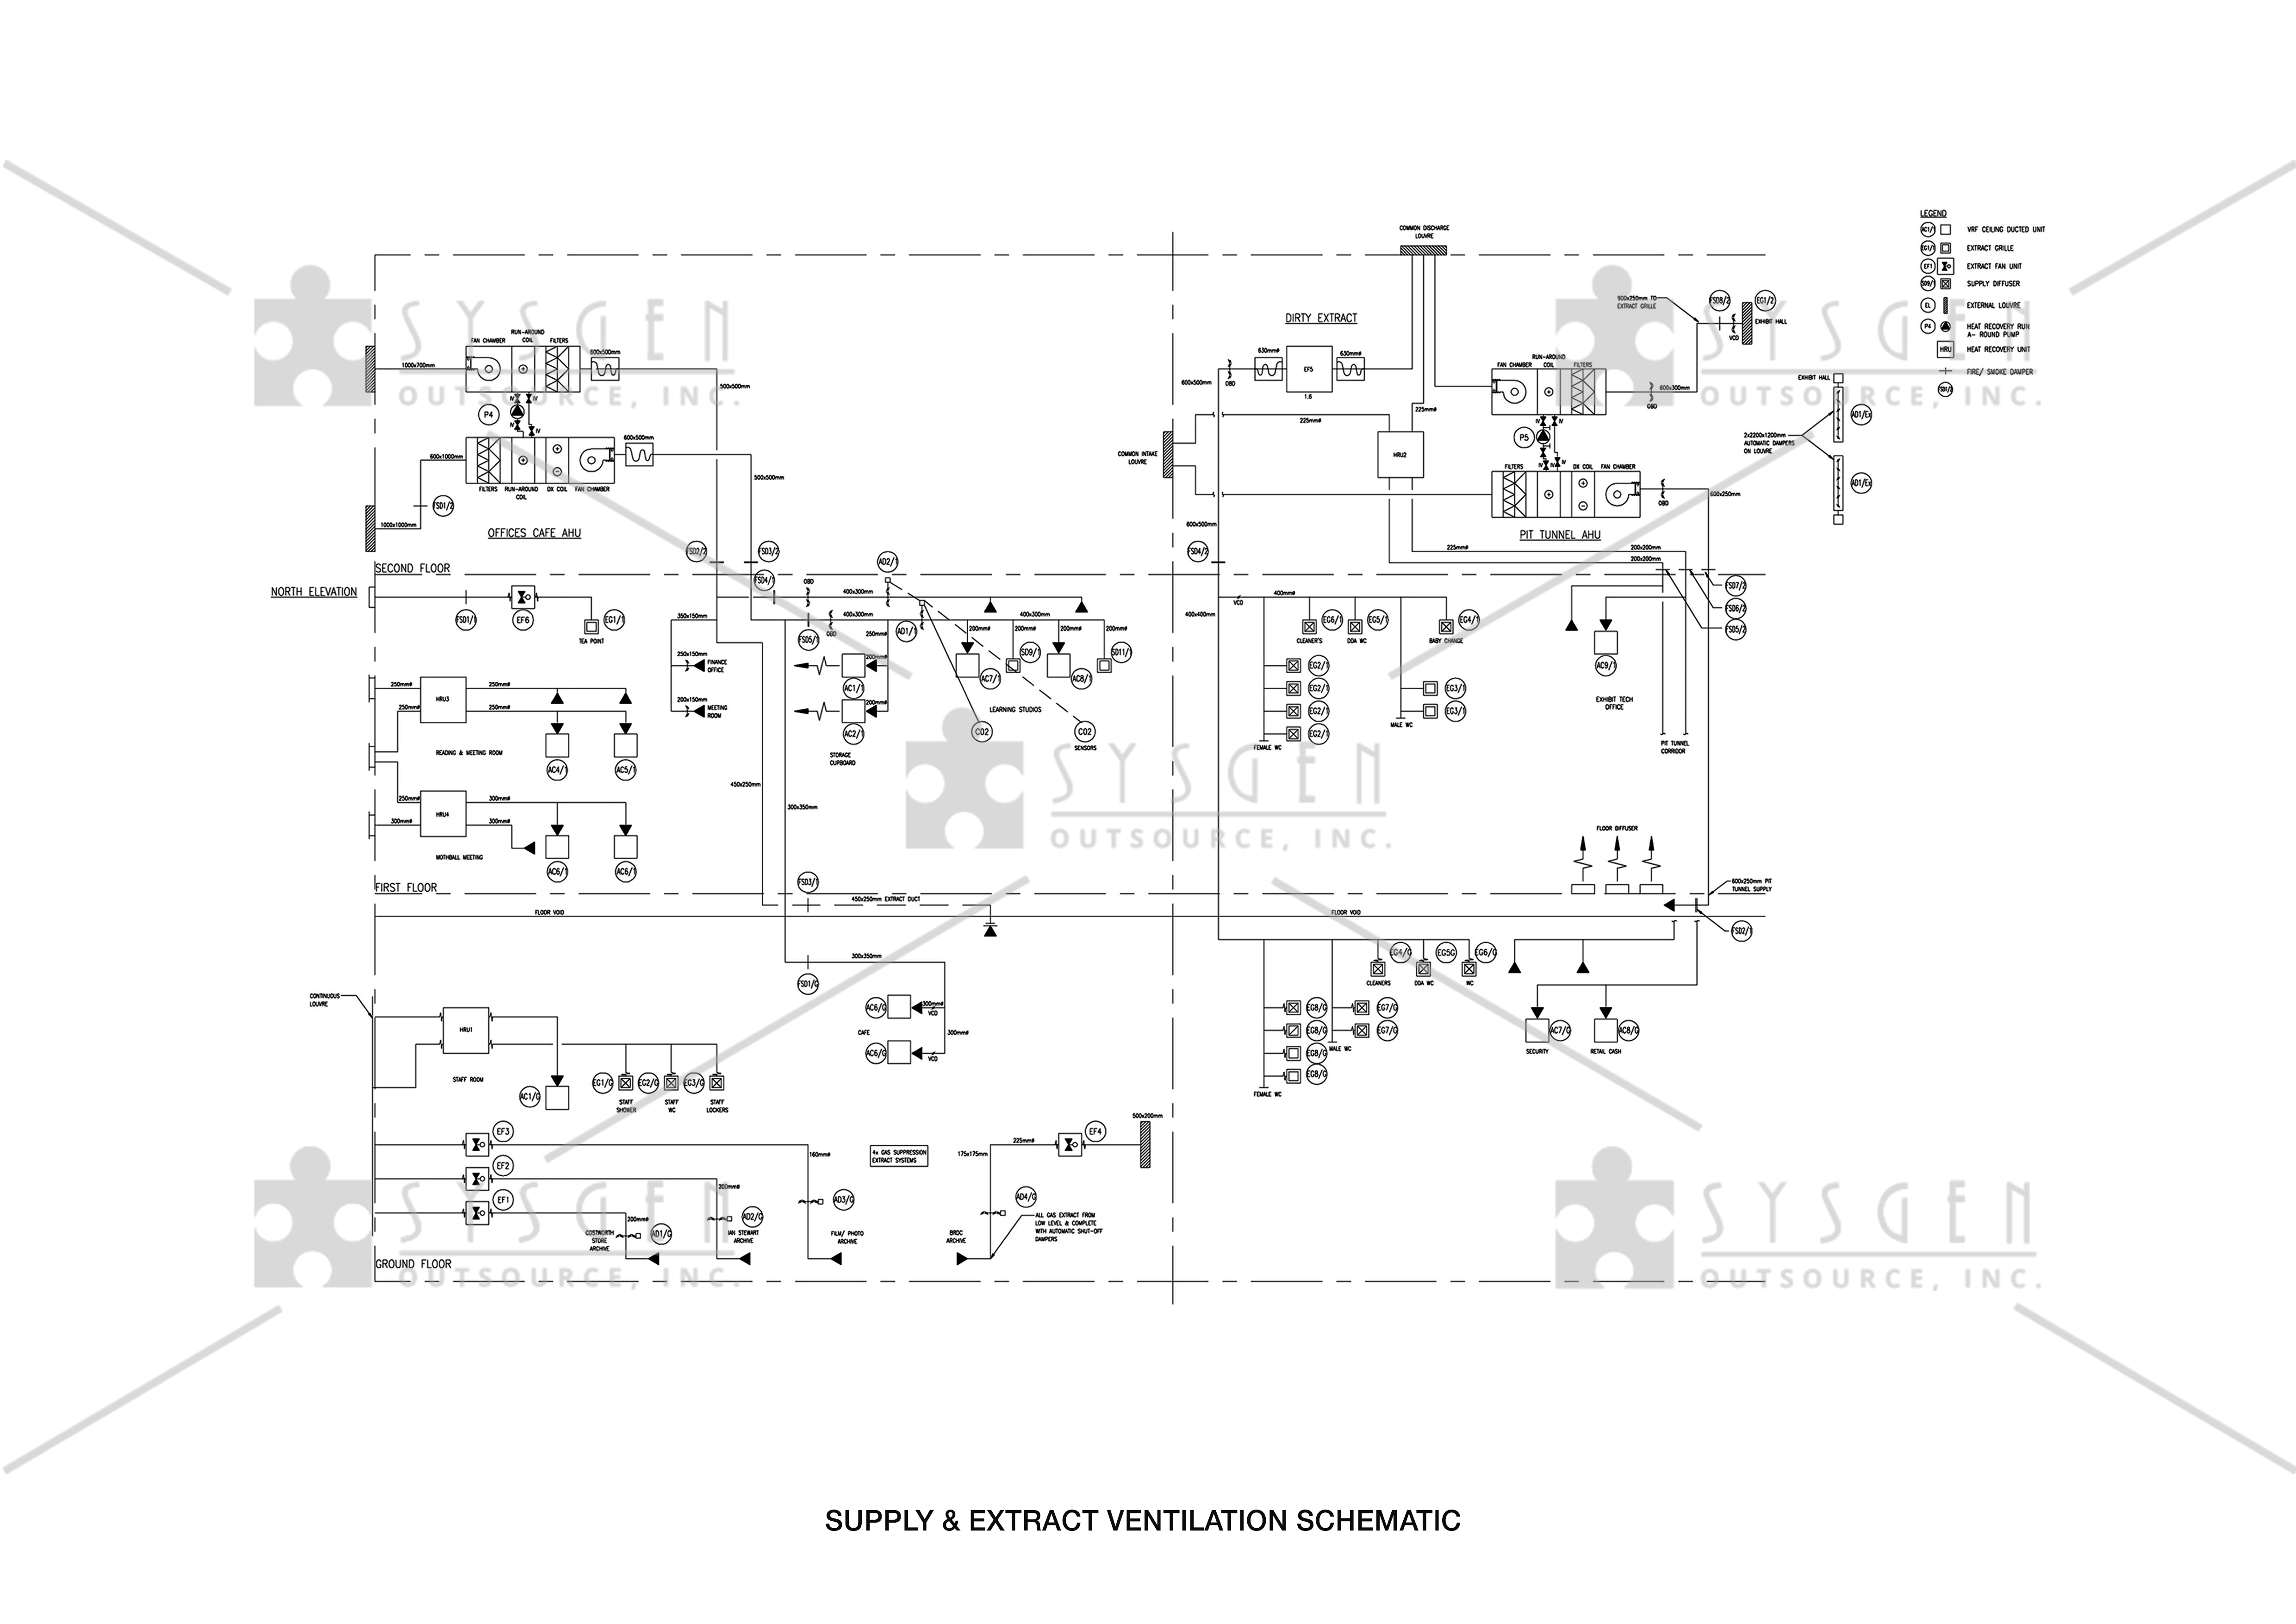 sysgen-outsource-cad-outsourcing-services-engineering-mechs10